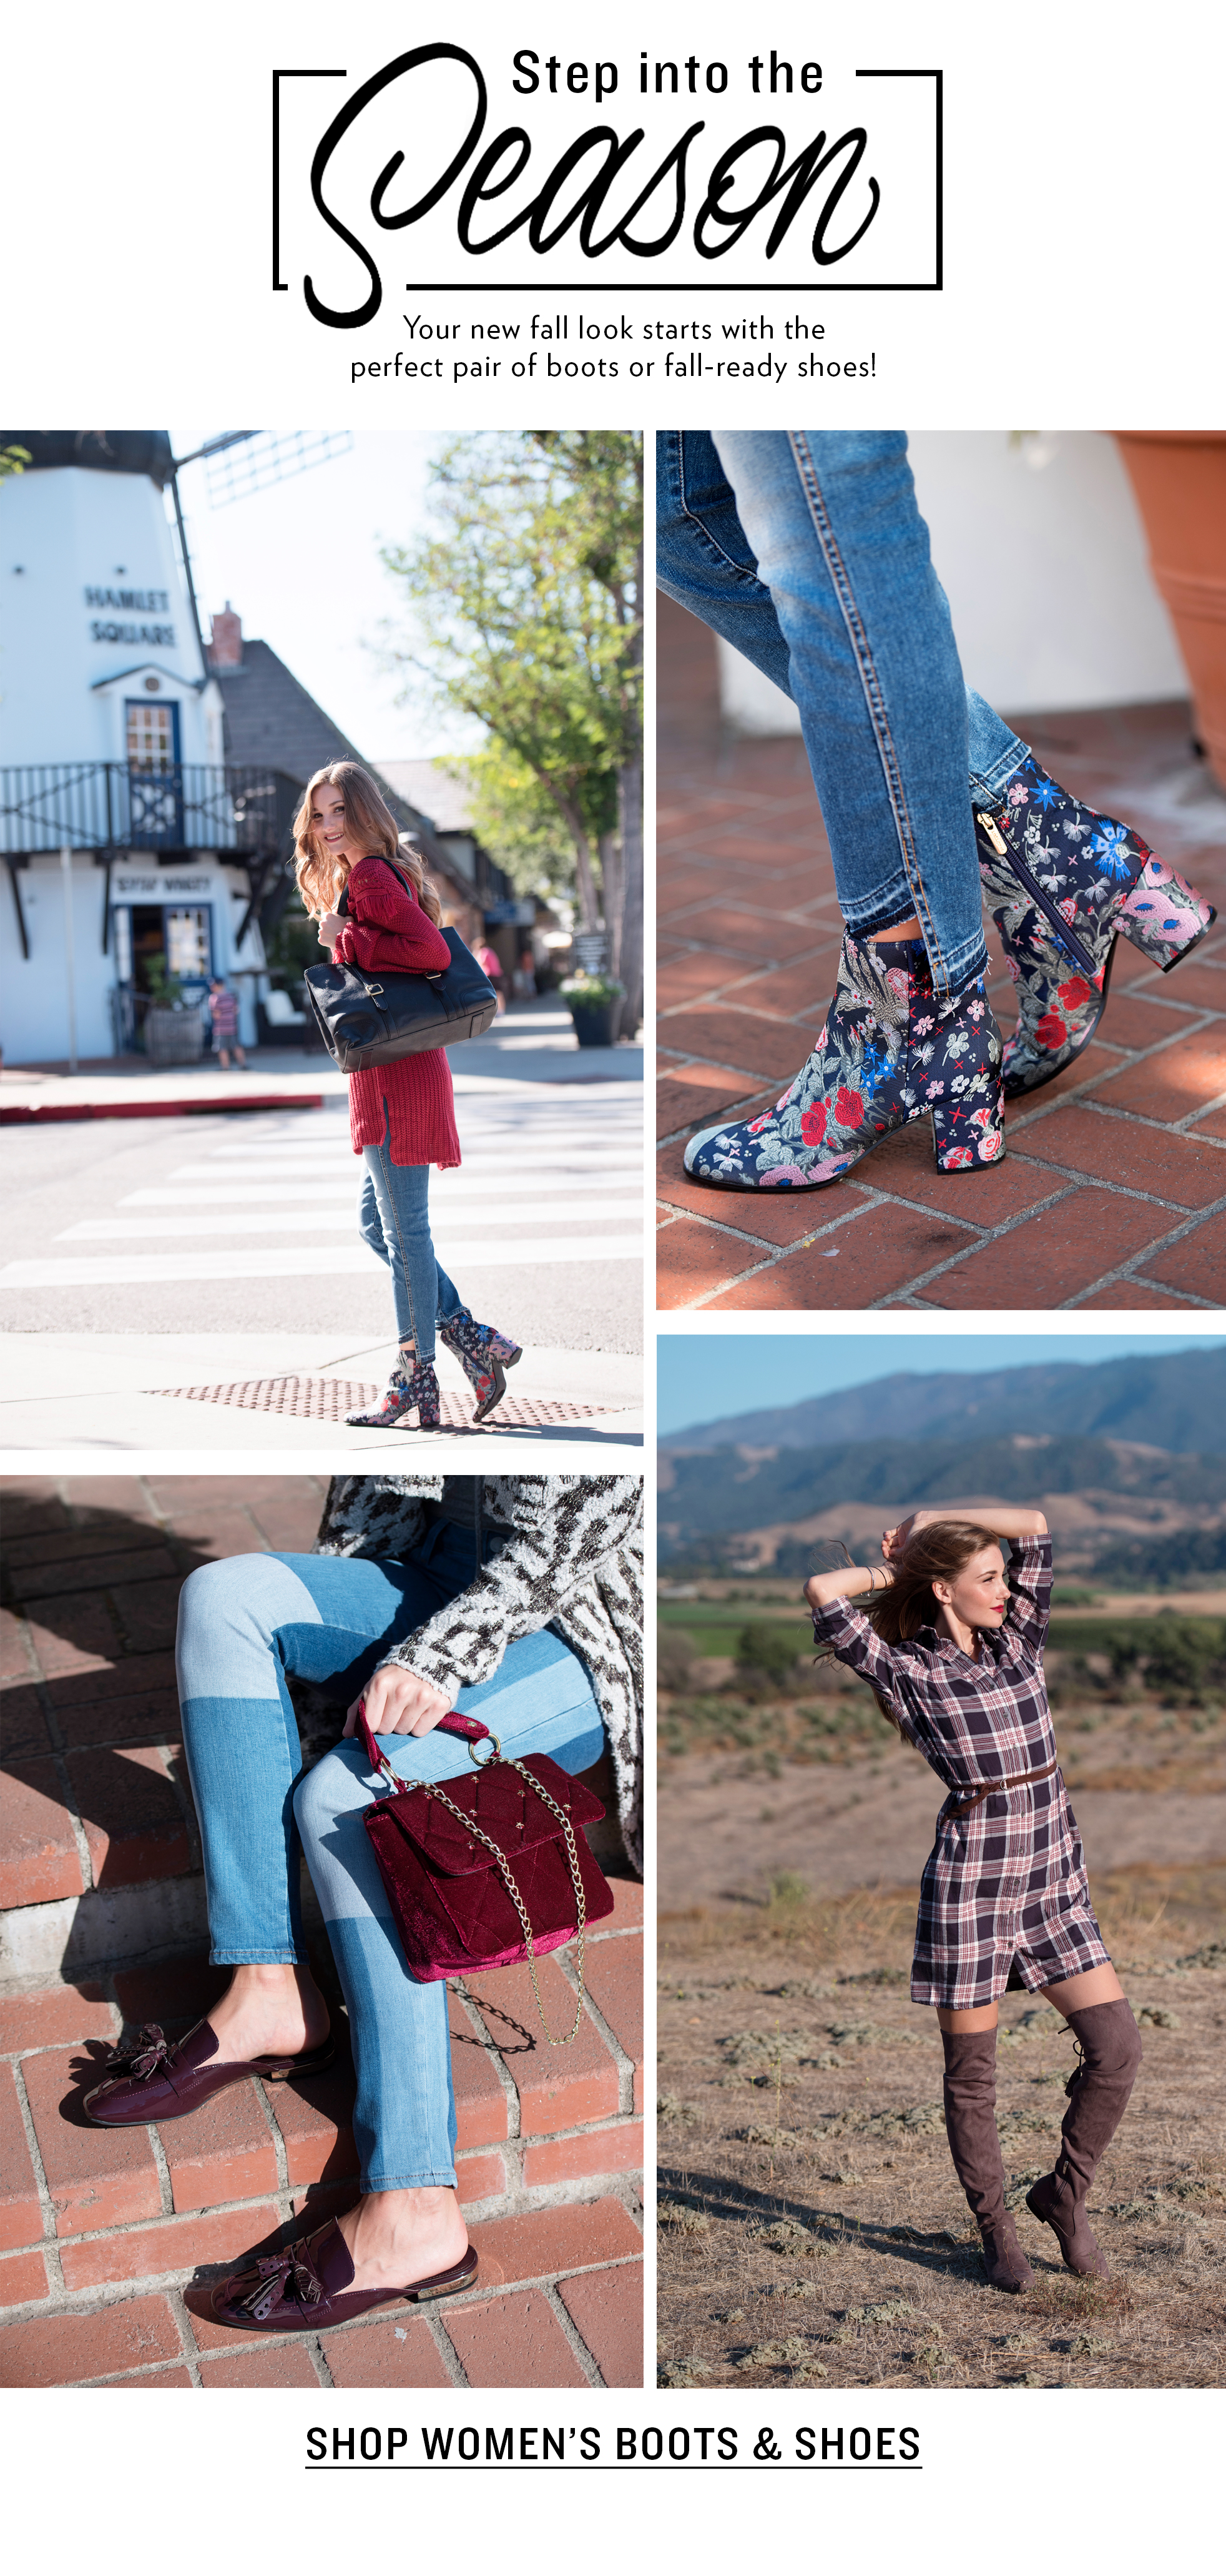 Shop Women's Fall Shoes And Boots